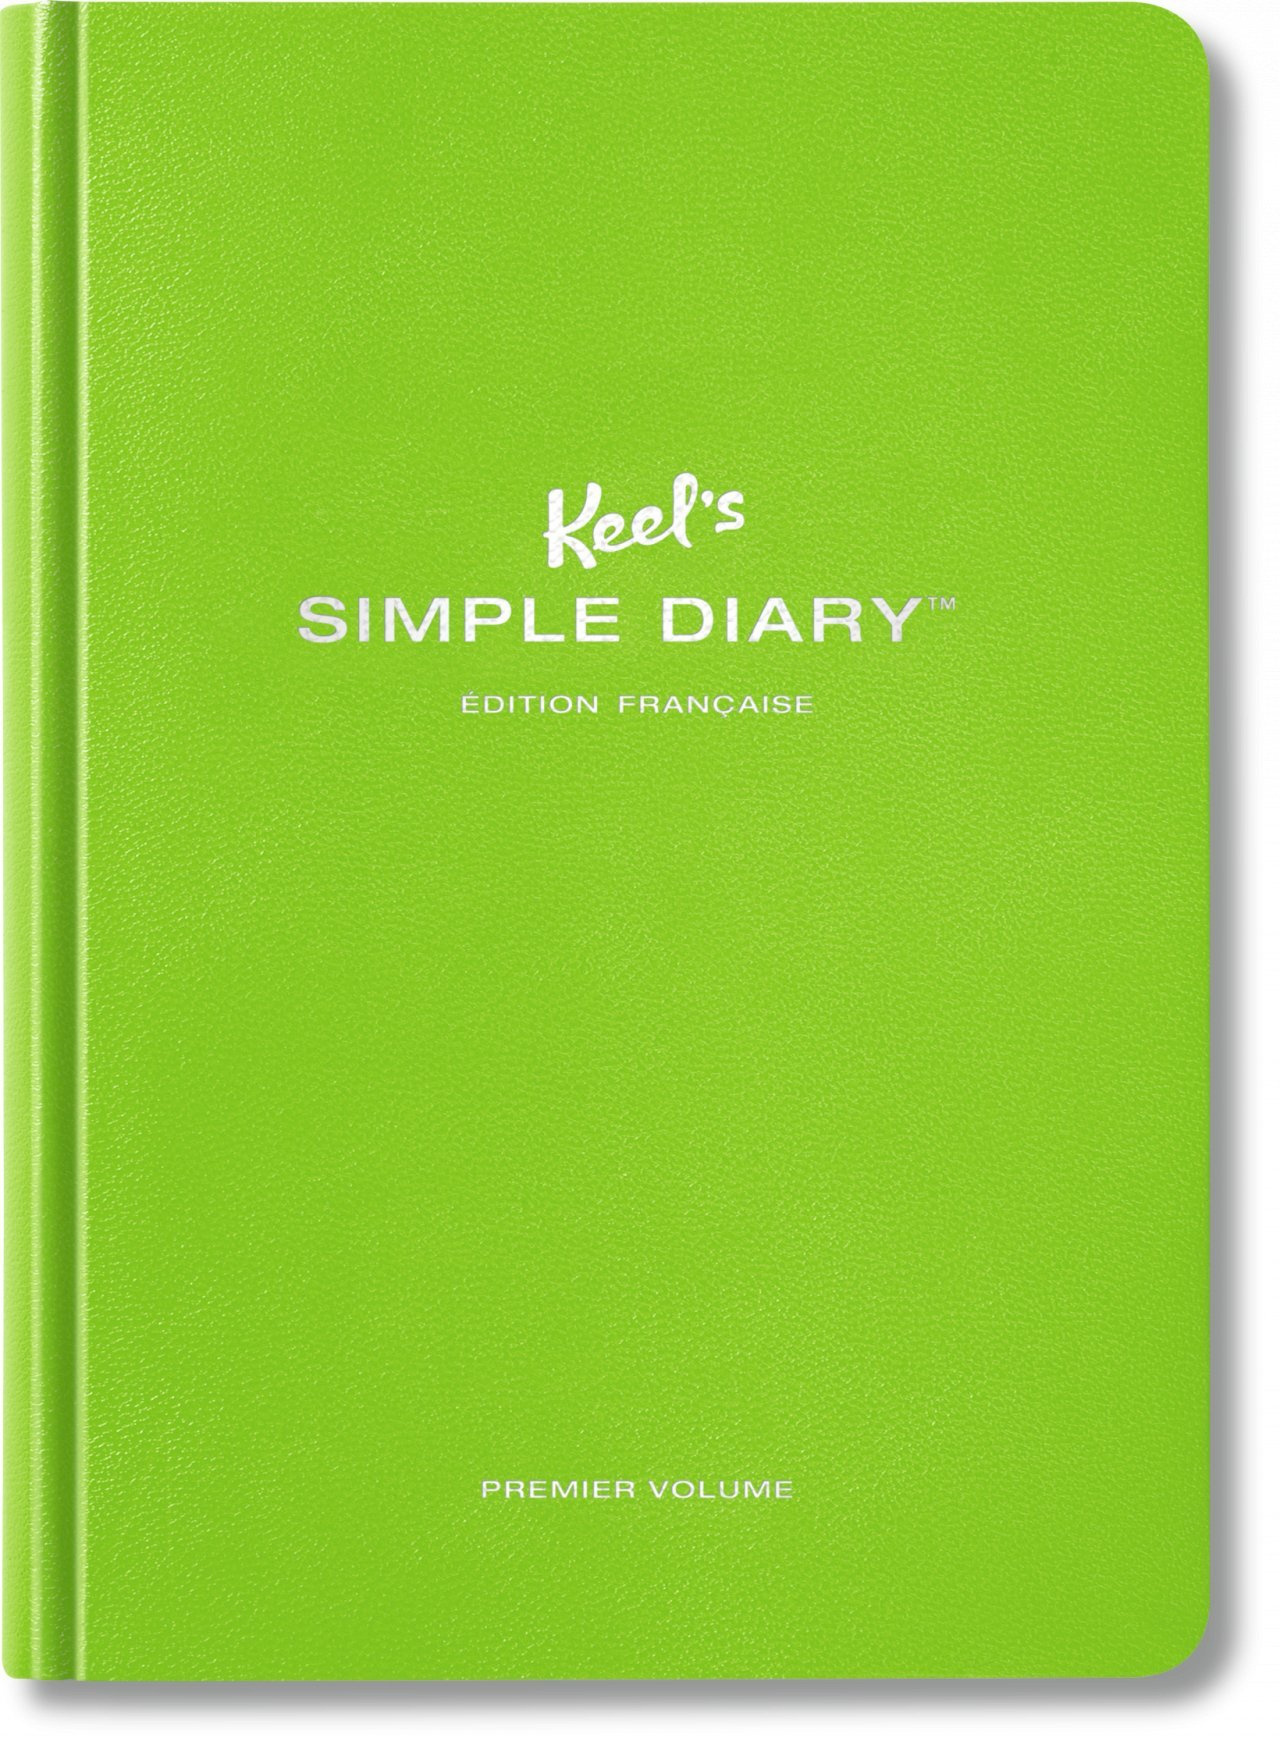 KEEL'S SIMPLE DIARY PREMIER VOLUME (VERT CITRON) - VA